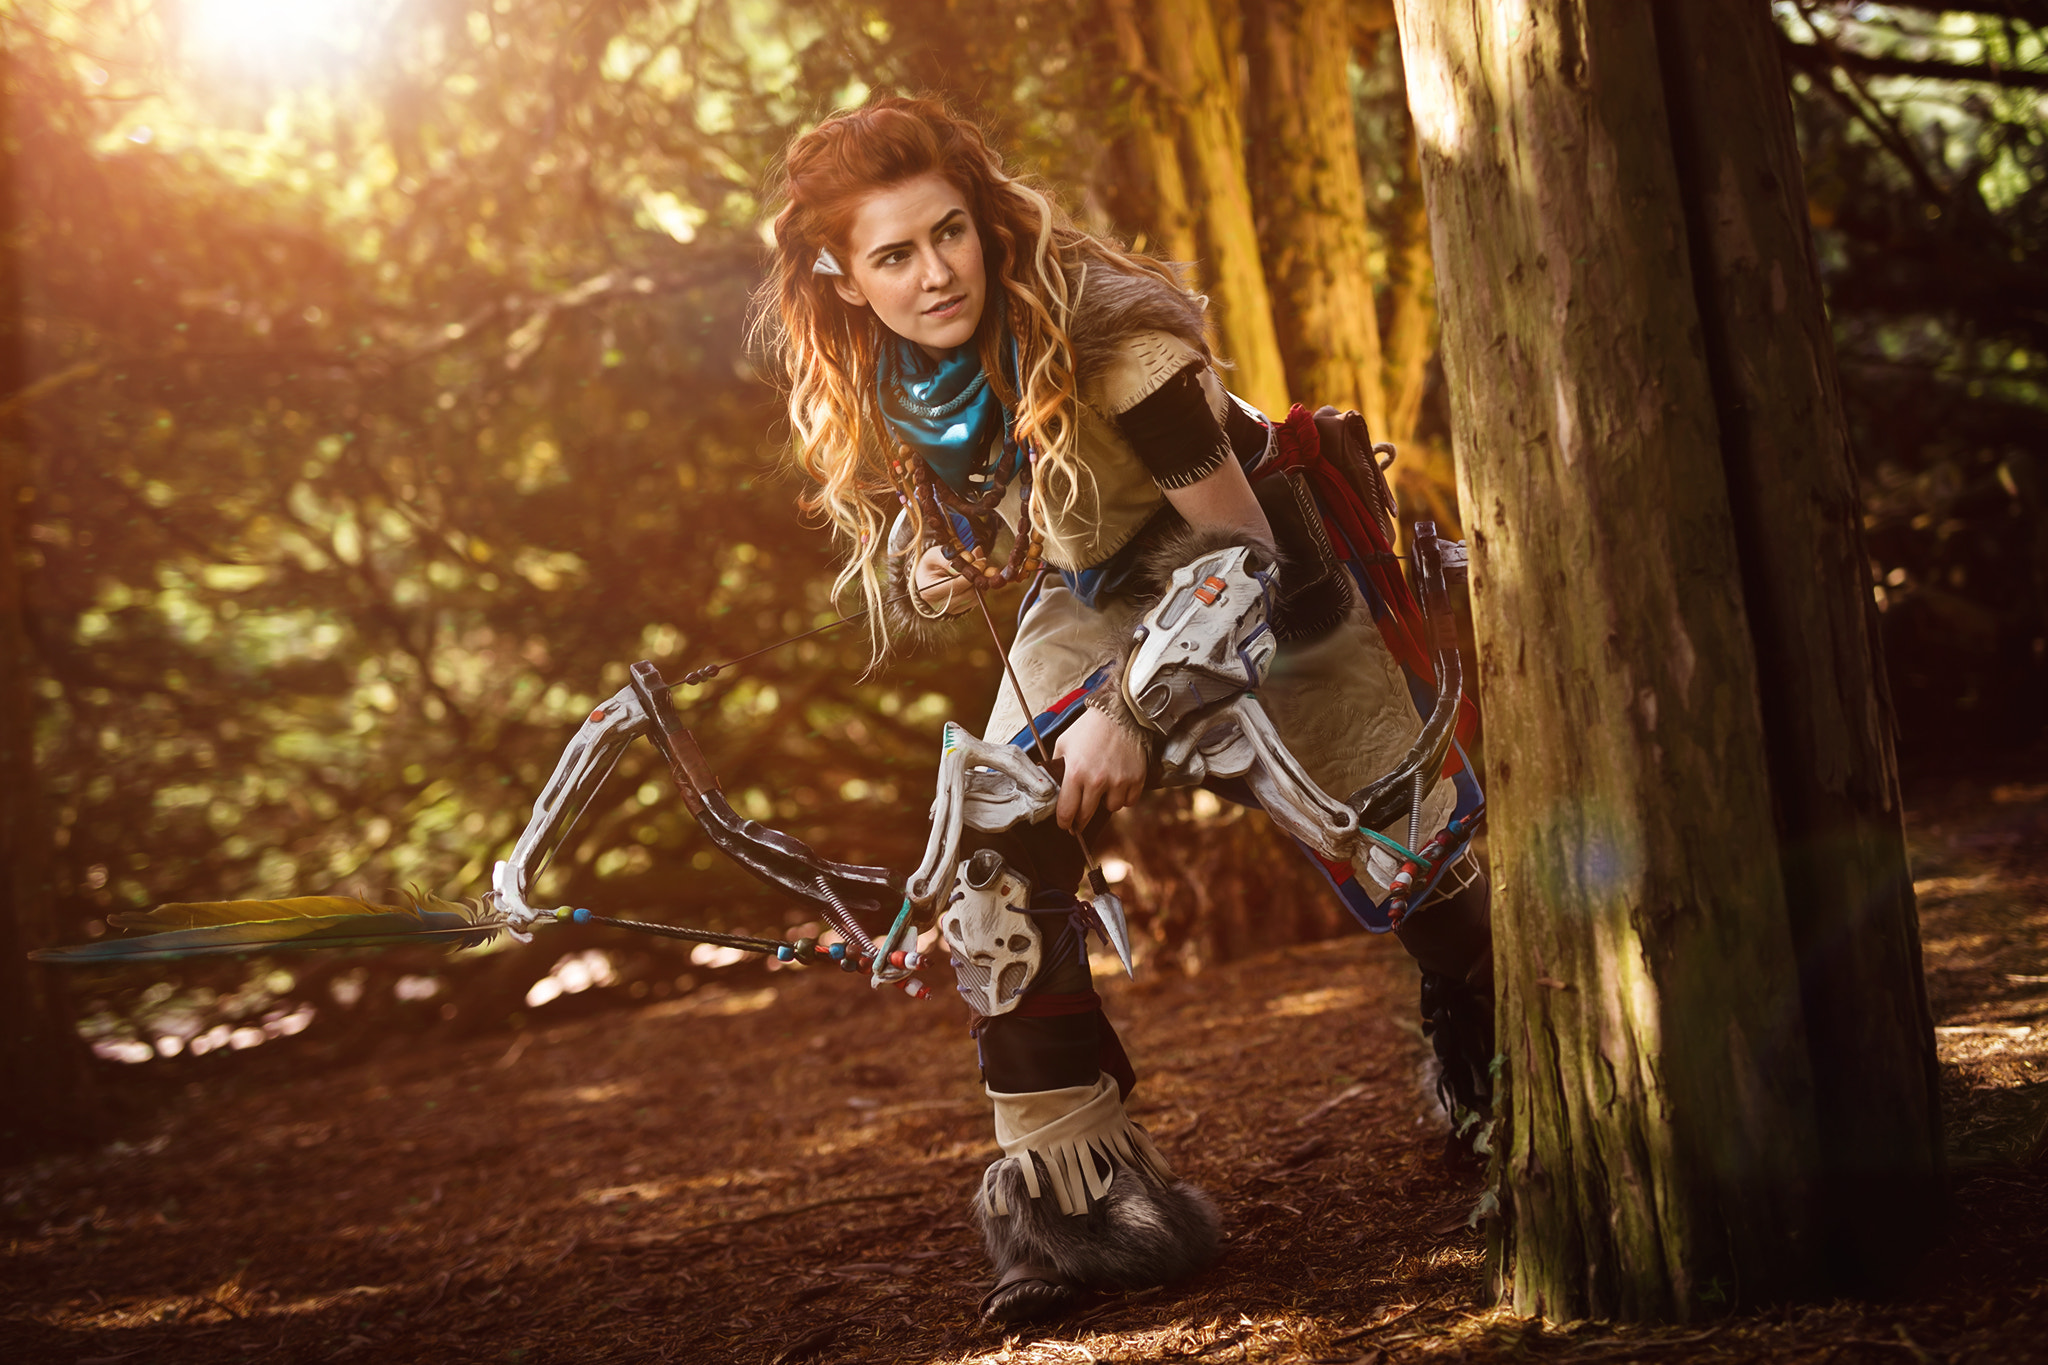 Red Indian Girl Wallpaper Horizon Zero Dawn Cosplay Hd Games 4k Wallpapers Images